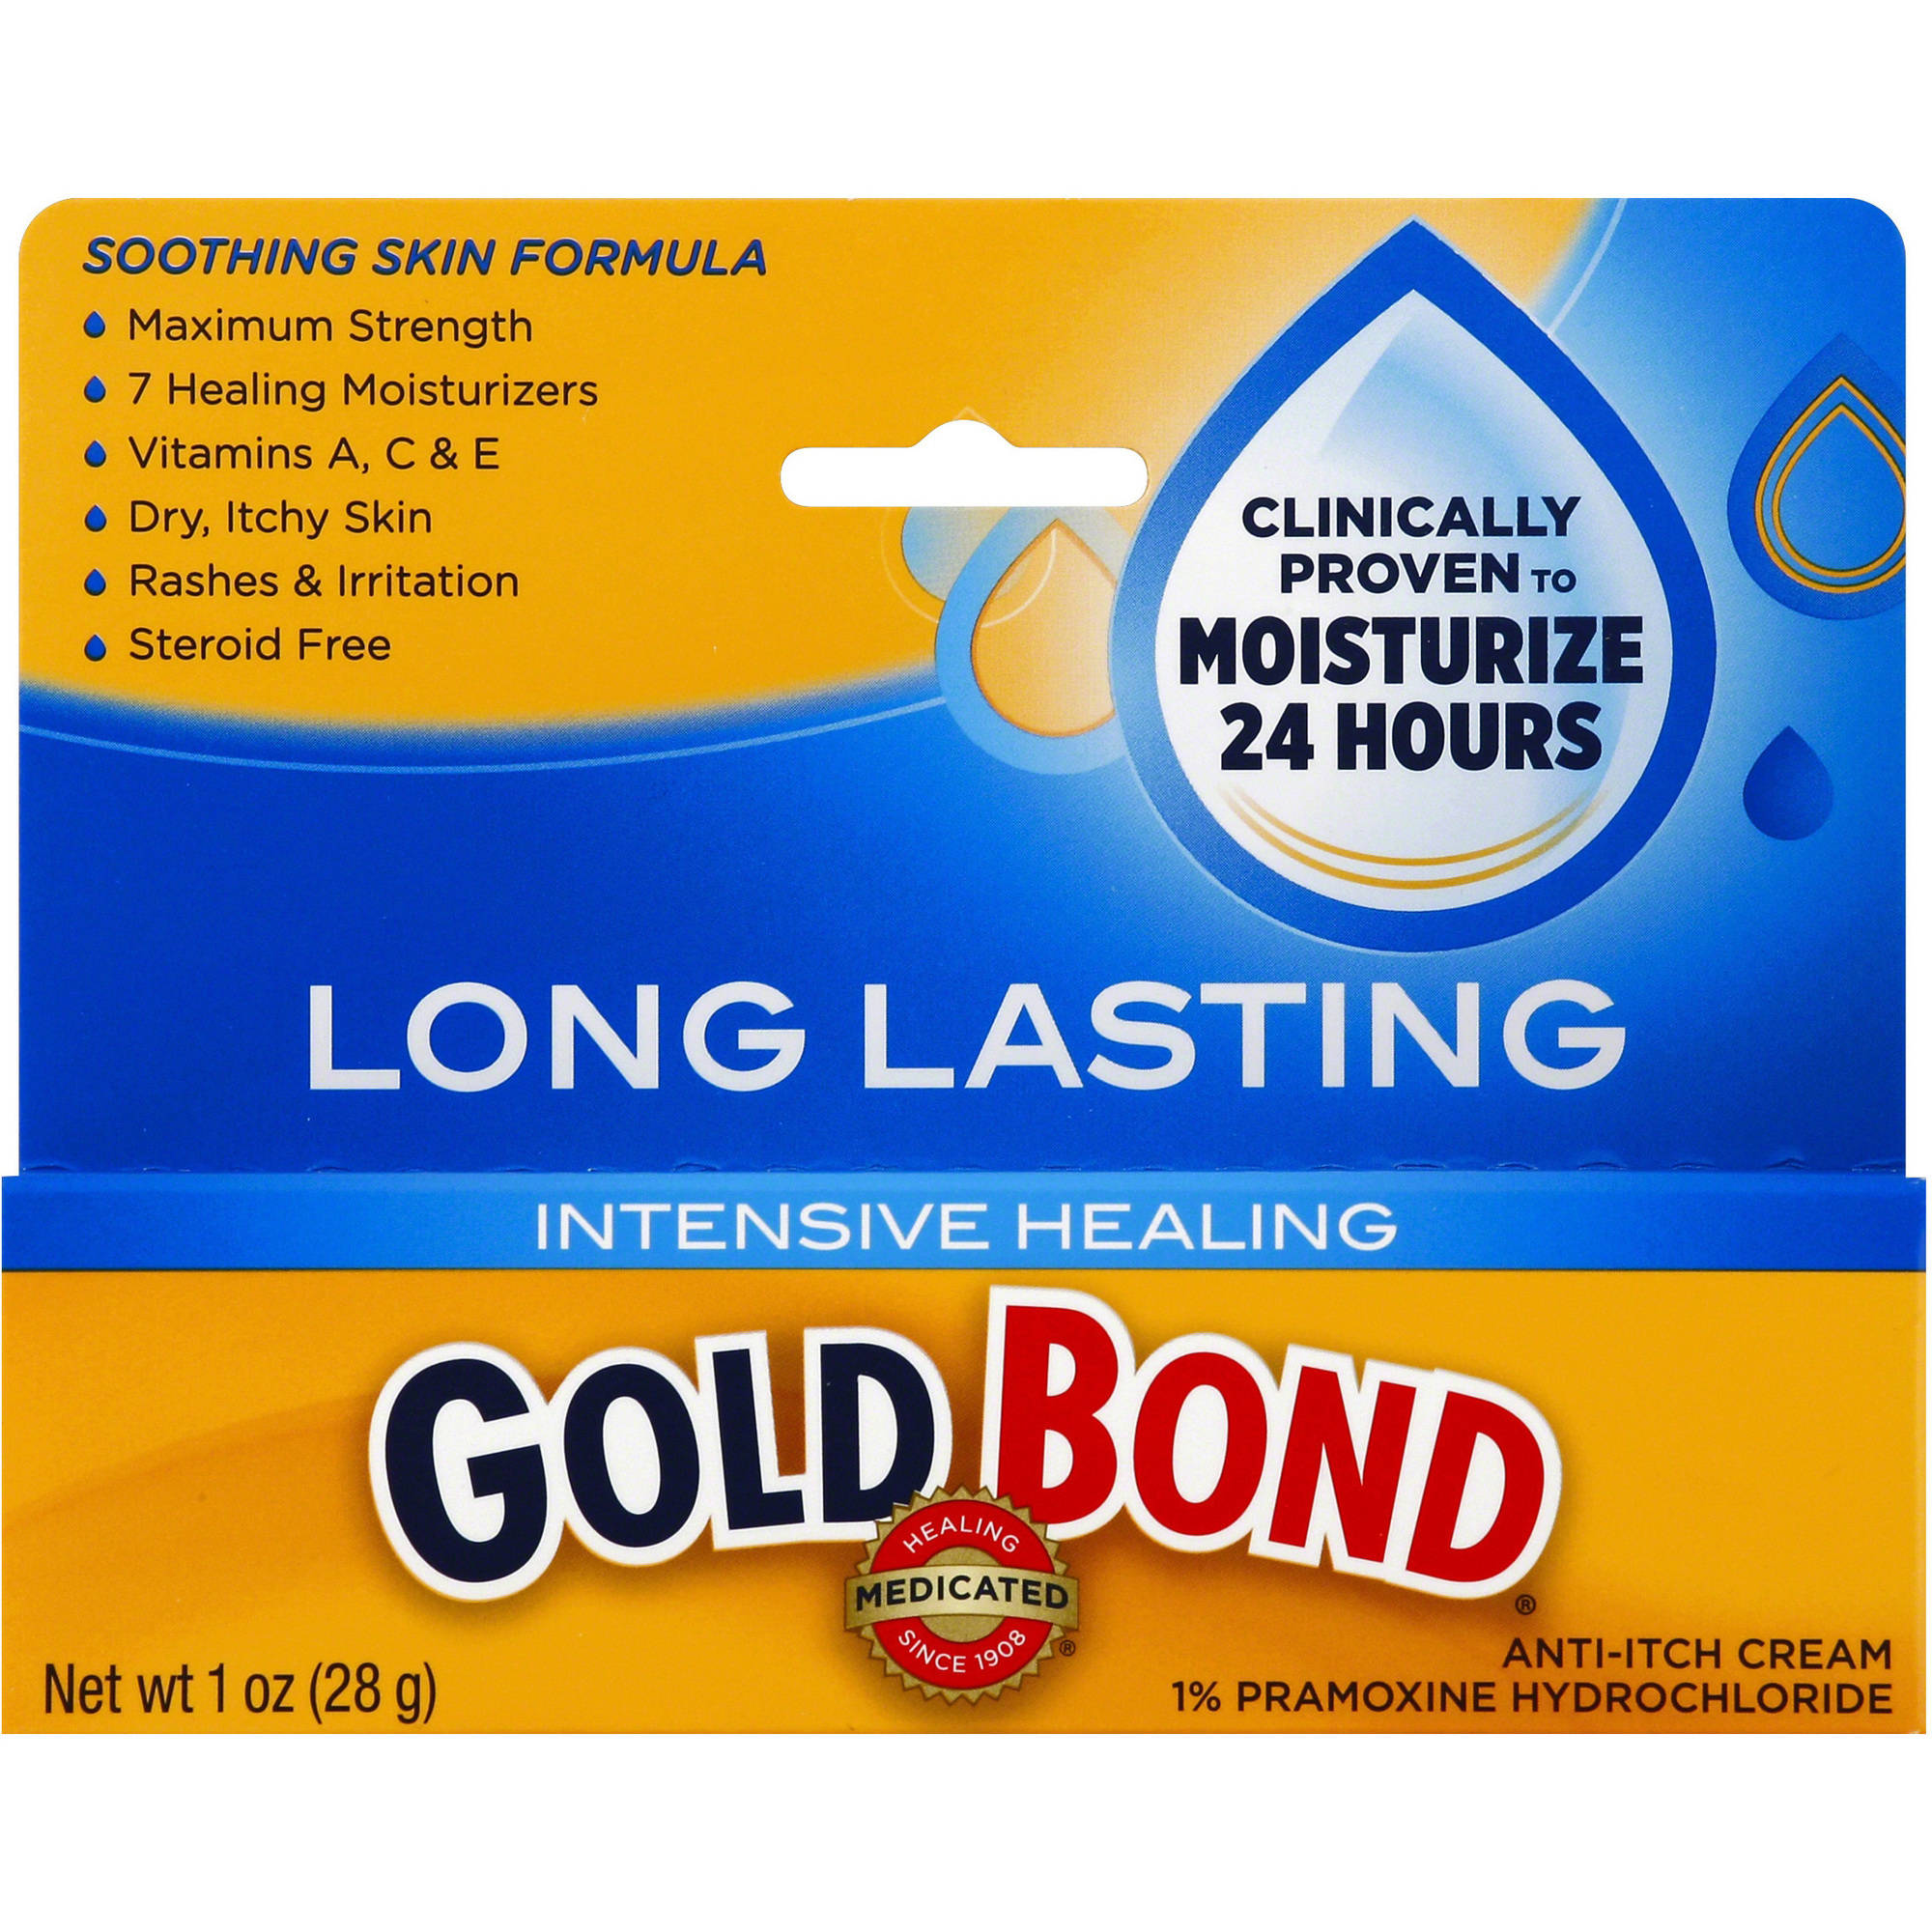 Gold Bond Medicated Intensive Healing Anti-Itch Cream, 1 oz